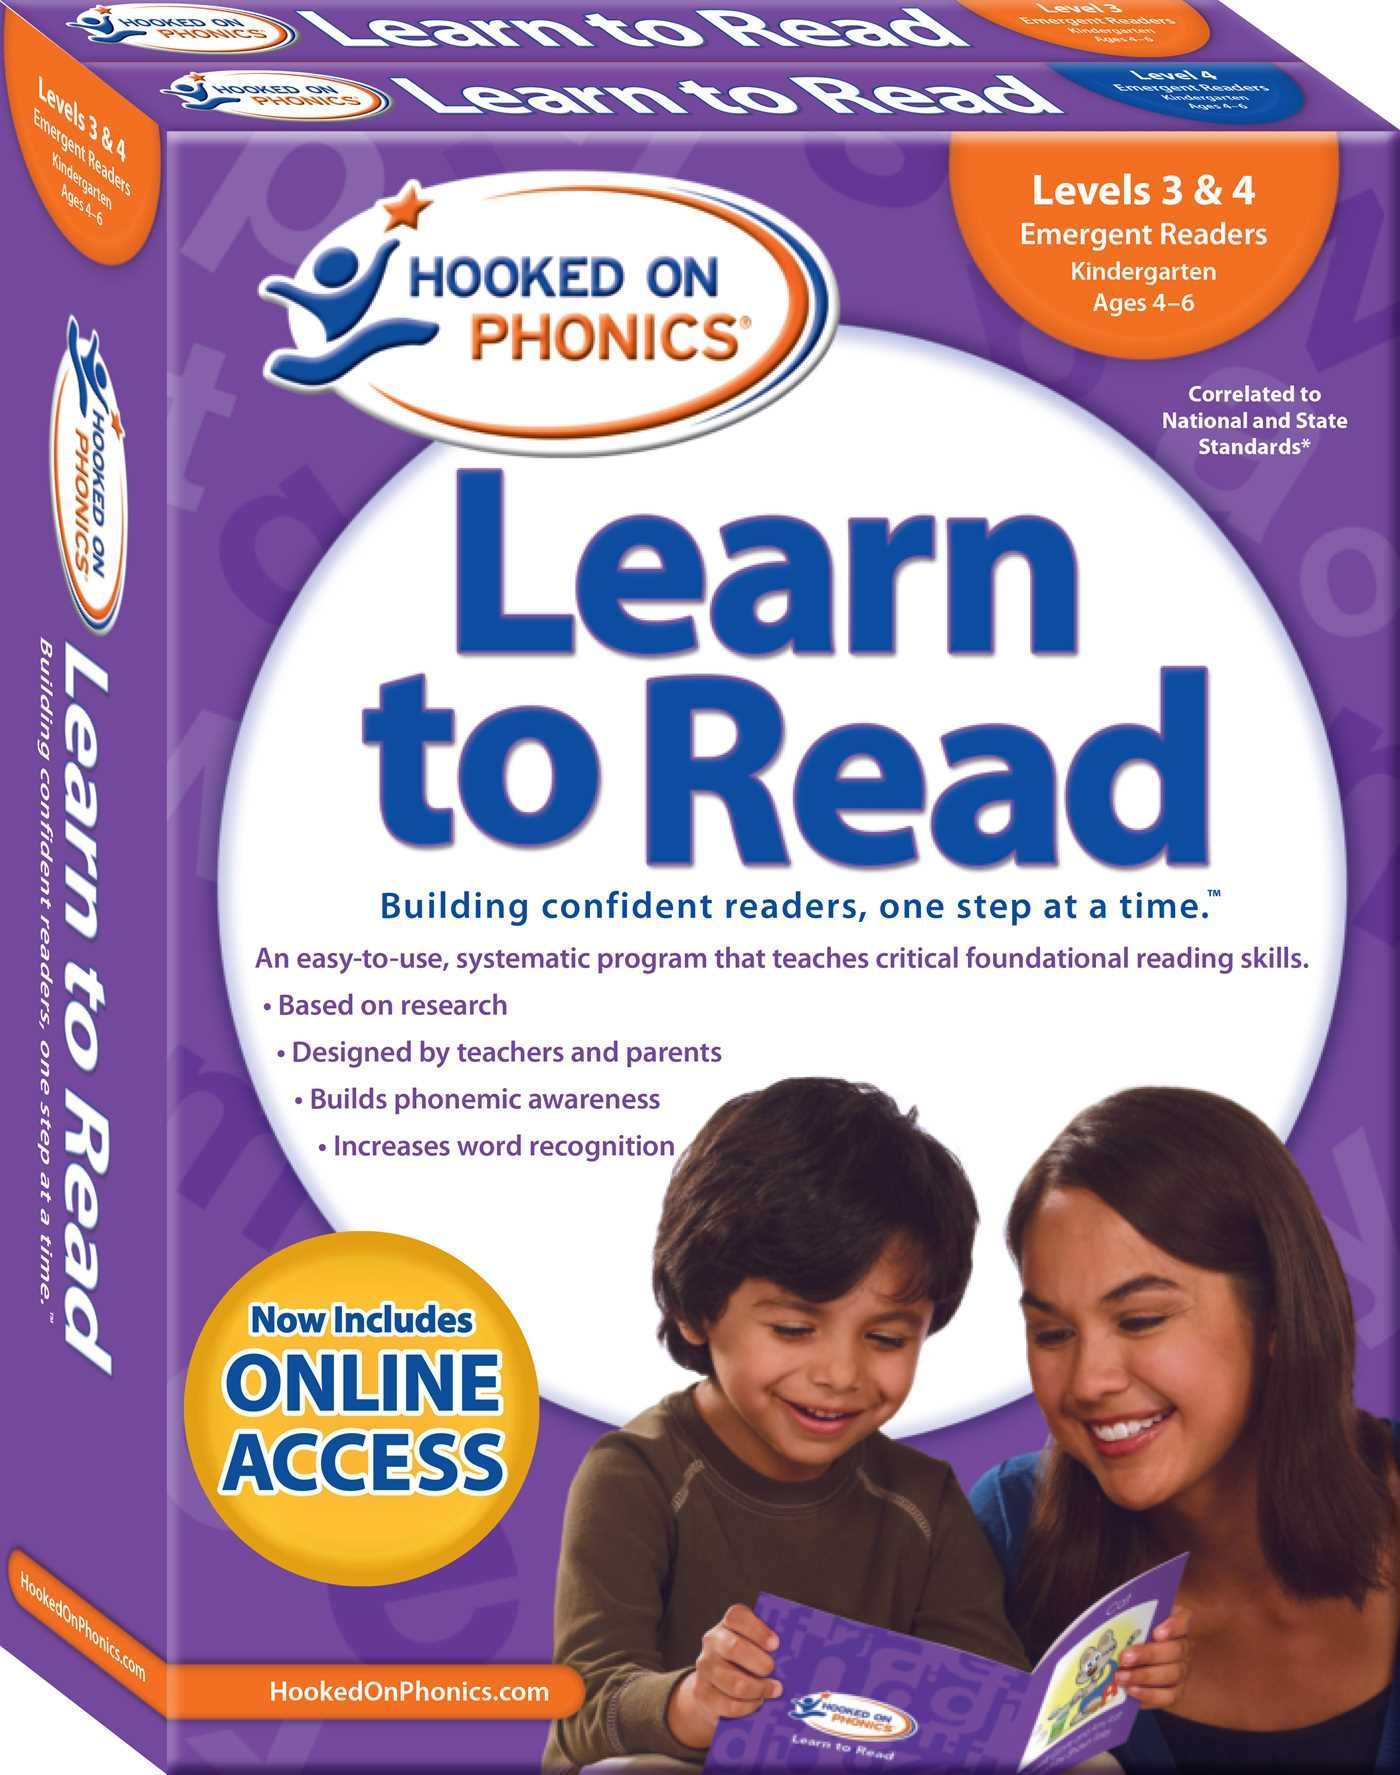 Hooked on Phonics Learn to Read - Levels 3&4 Complete: Emergent Readers (Kindergarten | Ages 4-6) (Learn to Read Complete Sets) by Hooked on Phonics